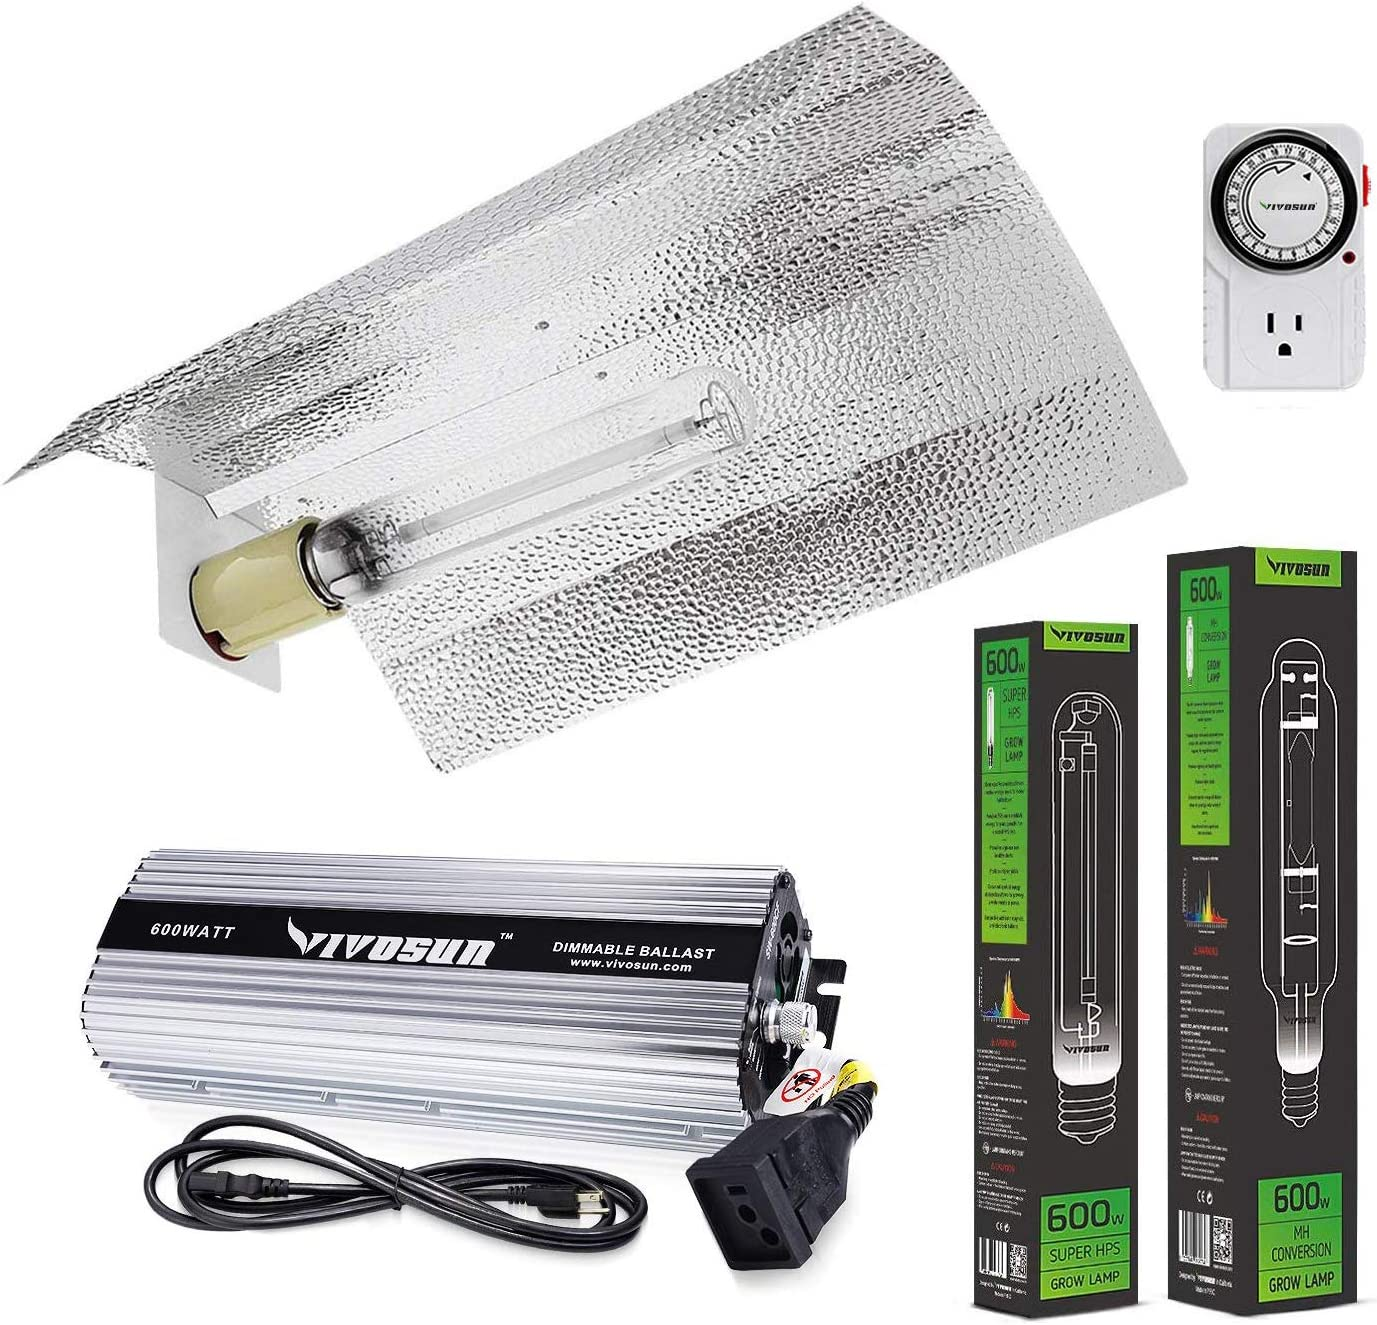 VIVOSUN Hydroponic 600 Watt HPS MH Grow Light